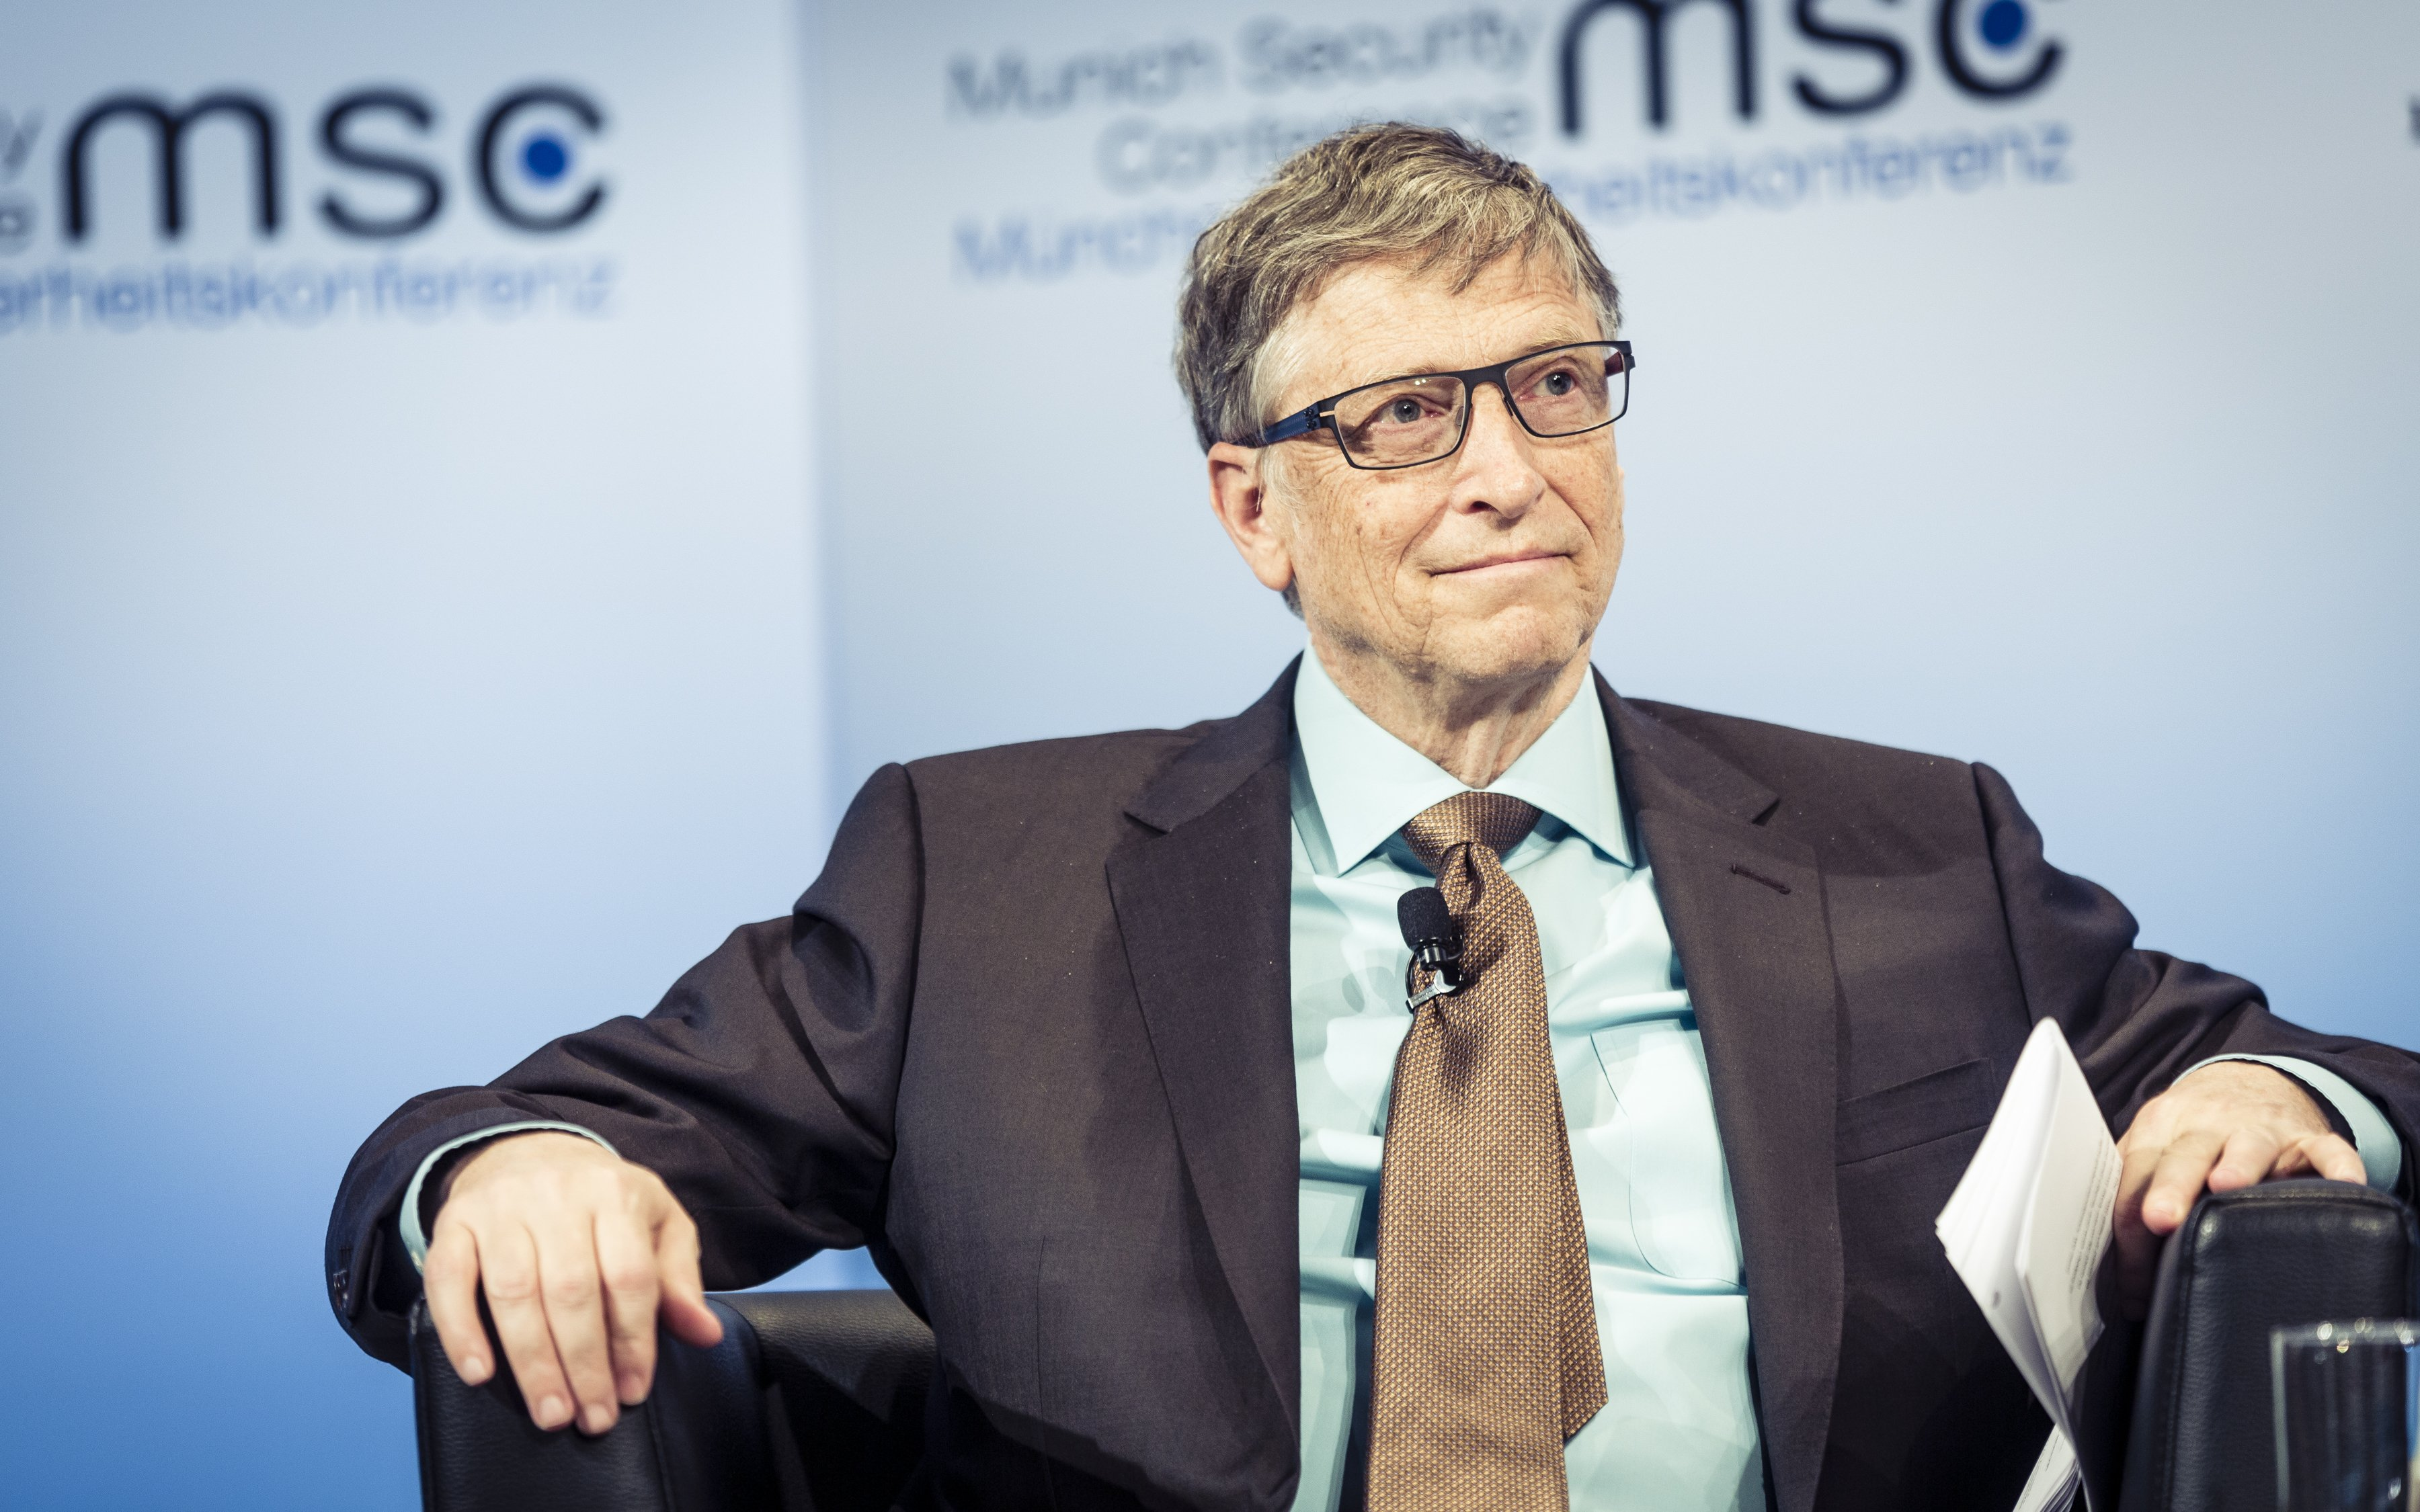 Bill_Gates_WLTH_Blog